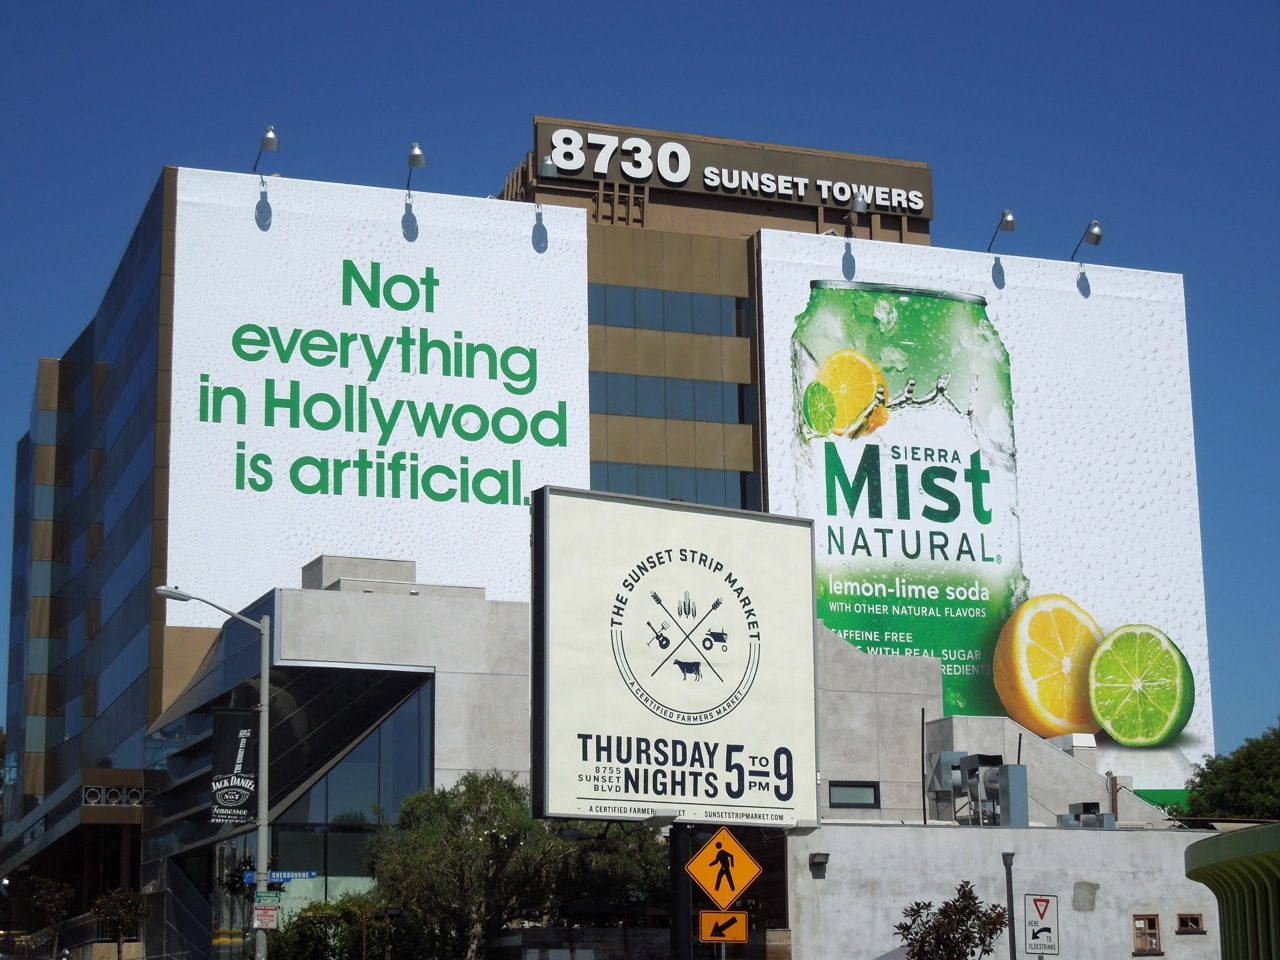 Sierra Mist Not everything in Hollywood is artificial billboards